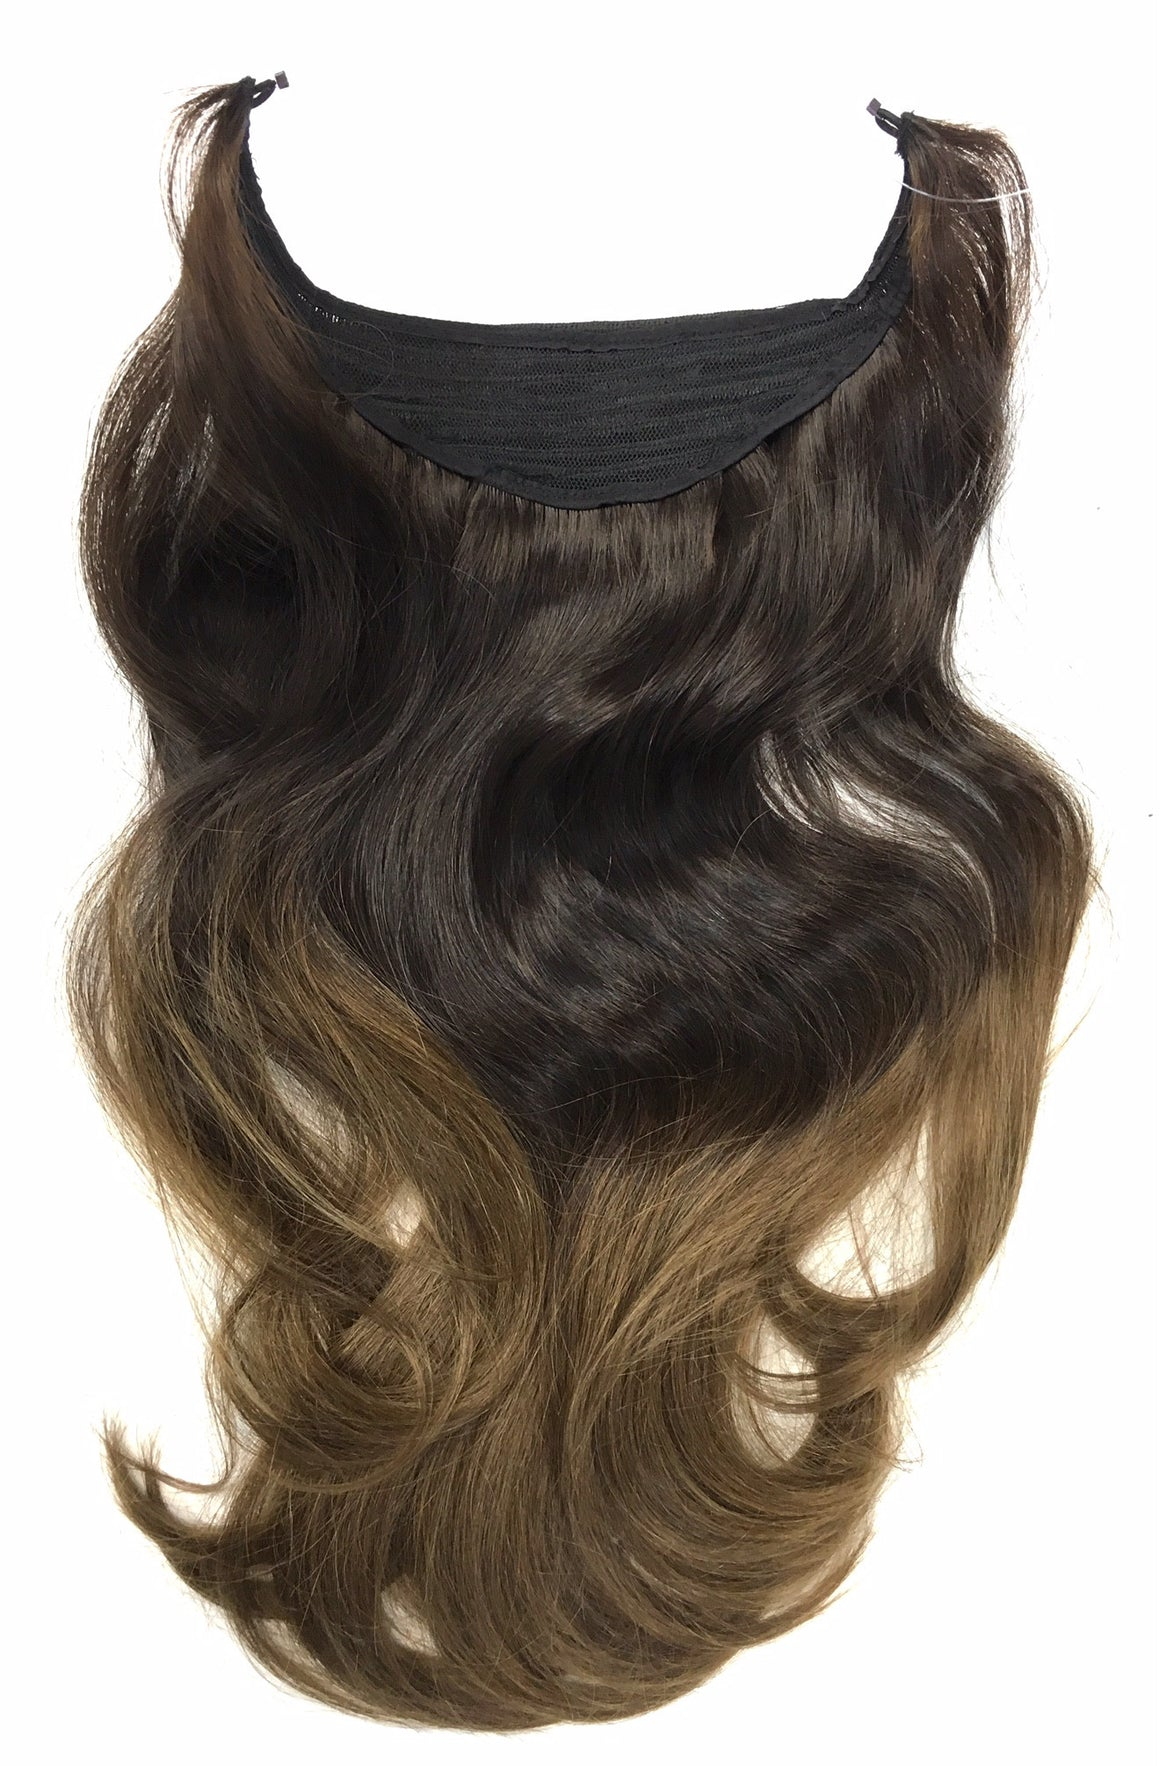 "Easy Hair Extensions - Wired Hair Extensions- Ombre Colors 20"" - Hairesthetic"